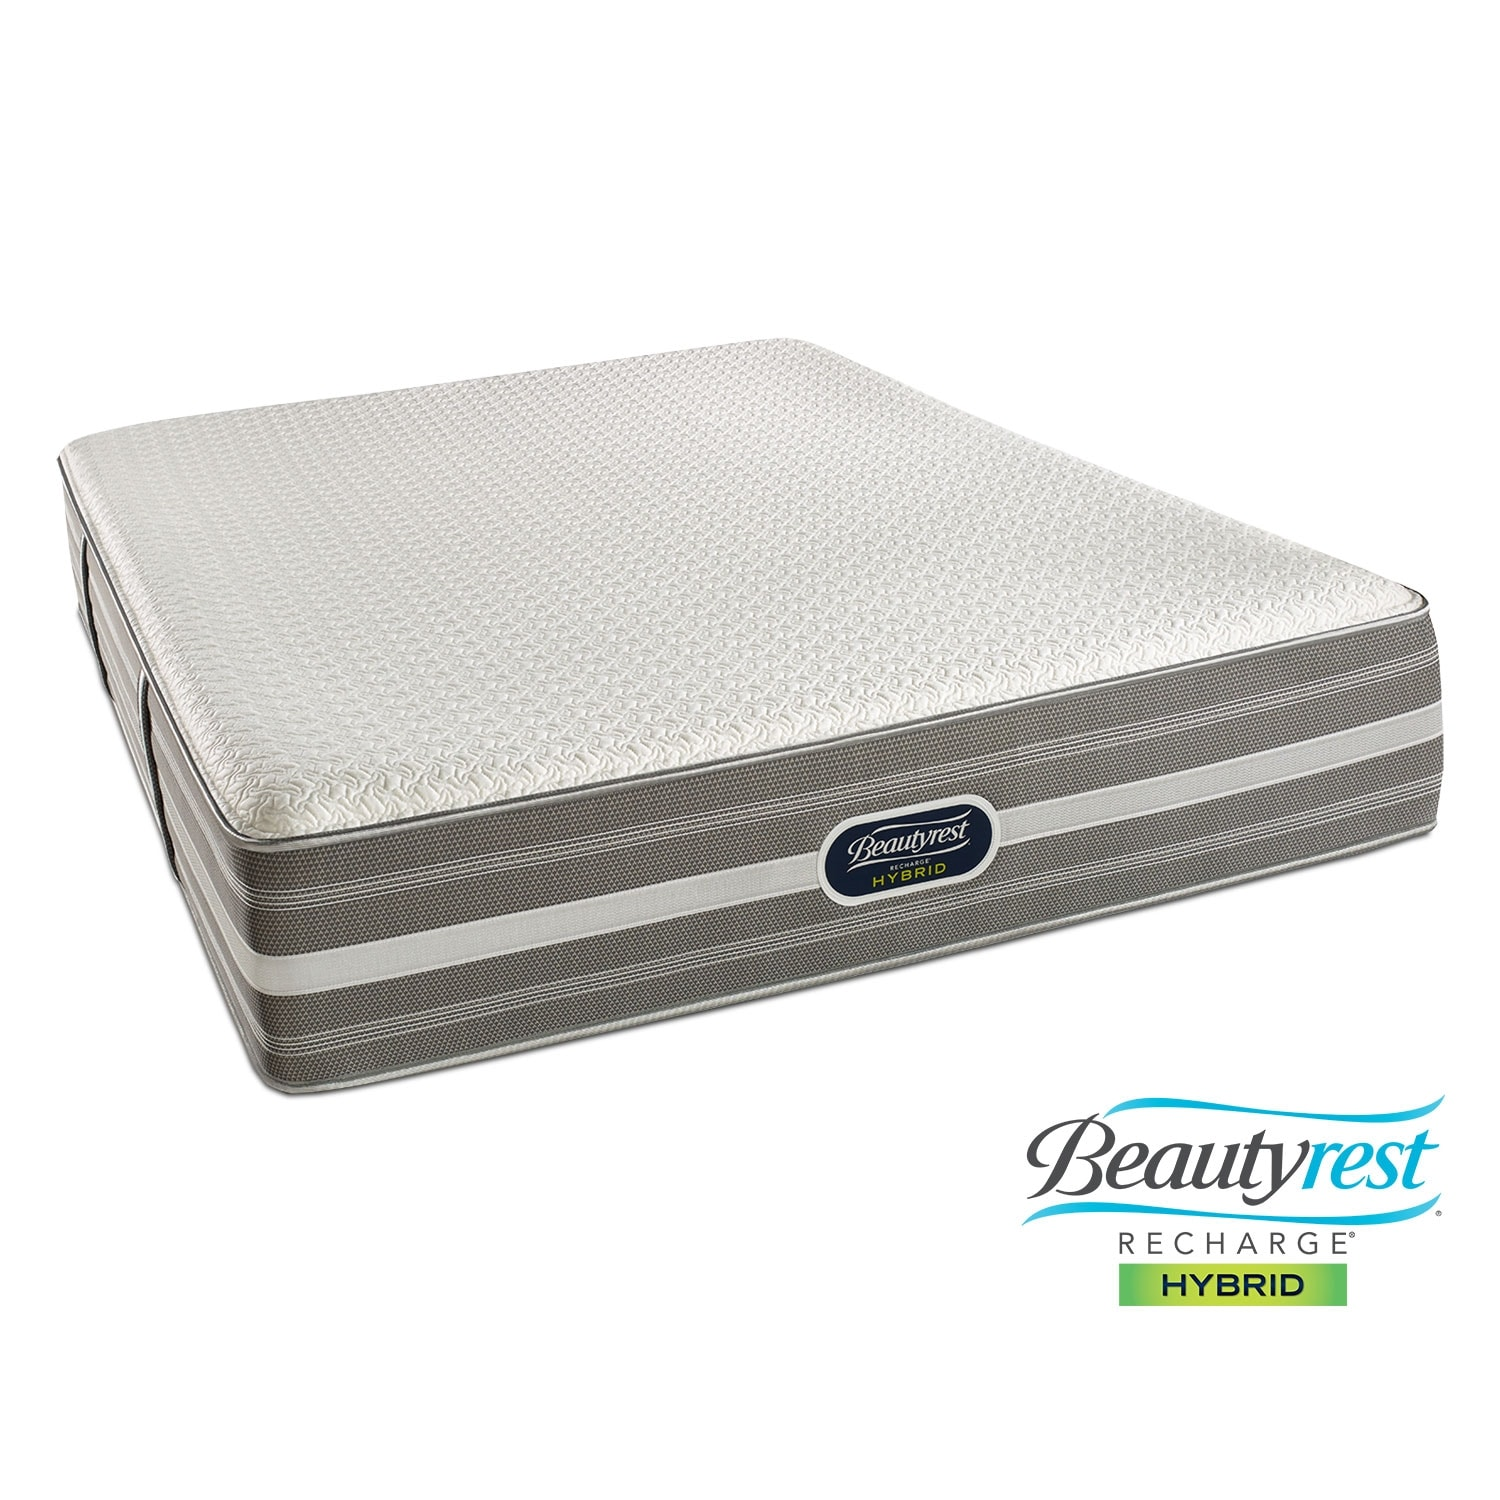 Mattresses and Bedding - Lamour Plush Full Mattress